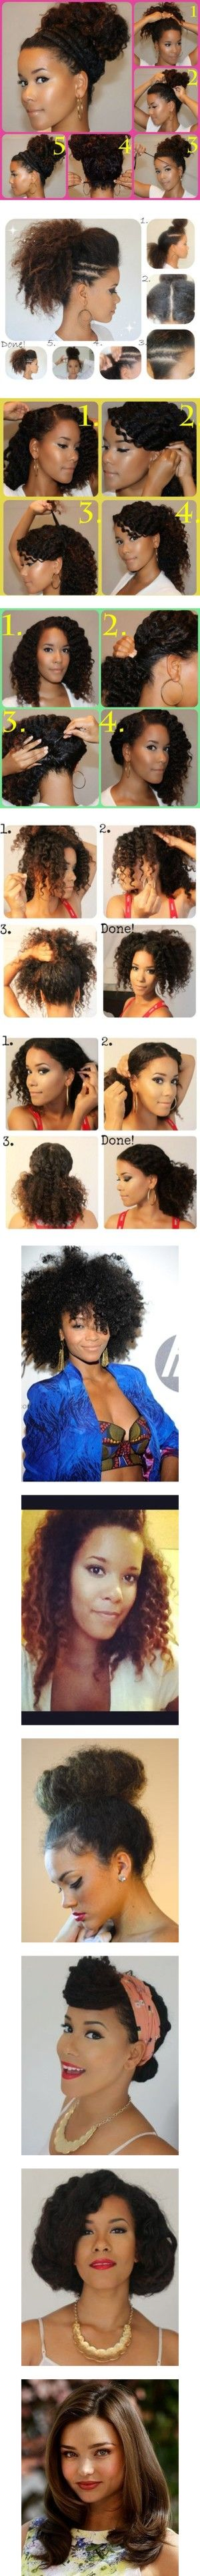 best natural black hairstyles images on pinterest hairstyle